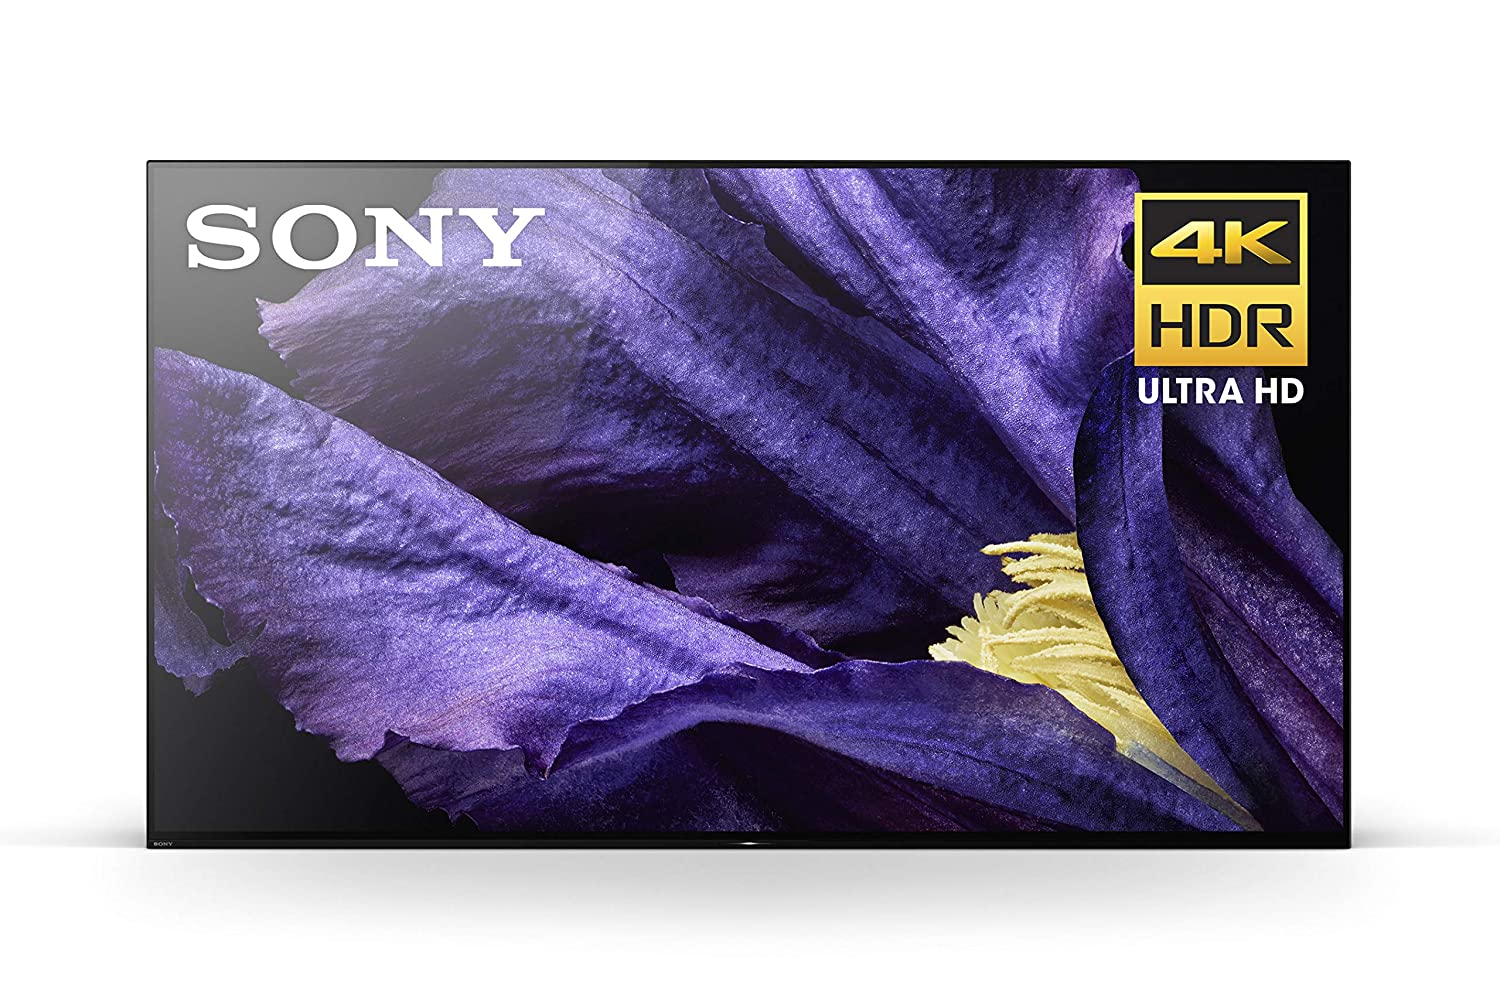 Sony XBR55A9F/A 55' 4K Ultra HD Smart Television Sony Electronics Inc.